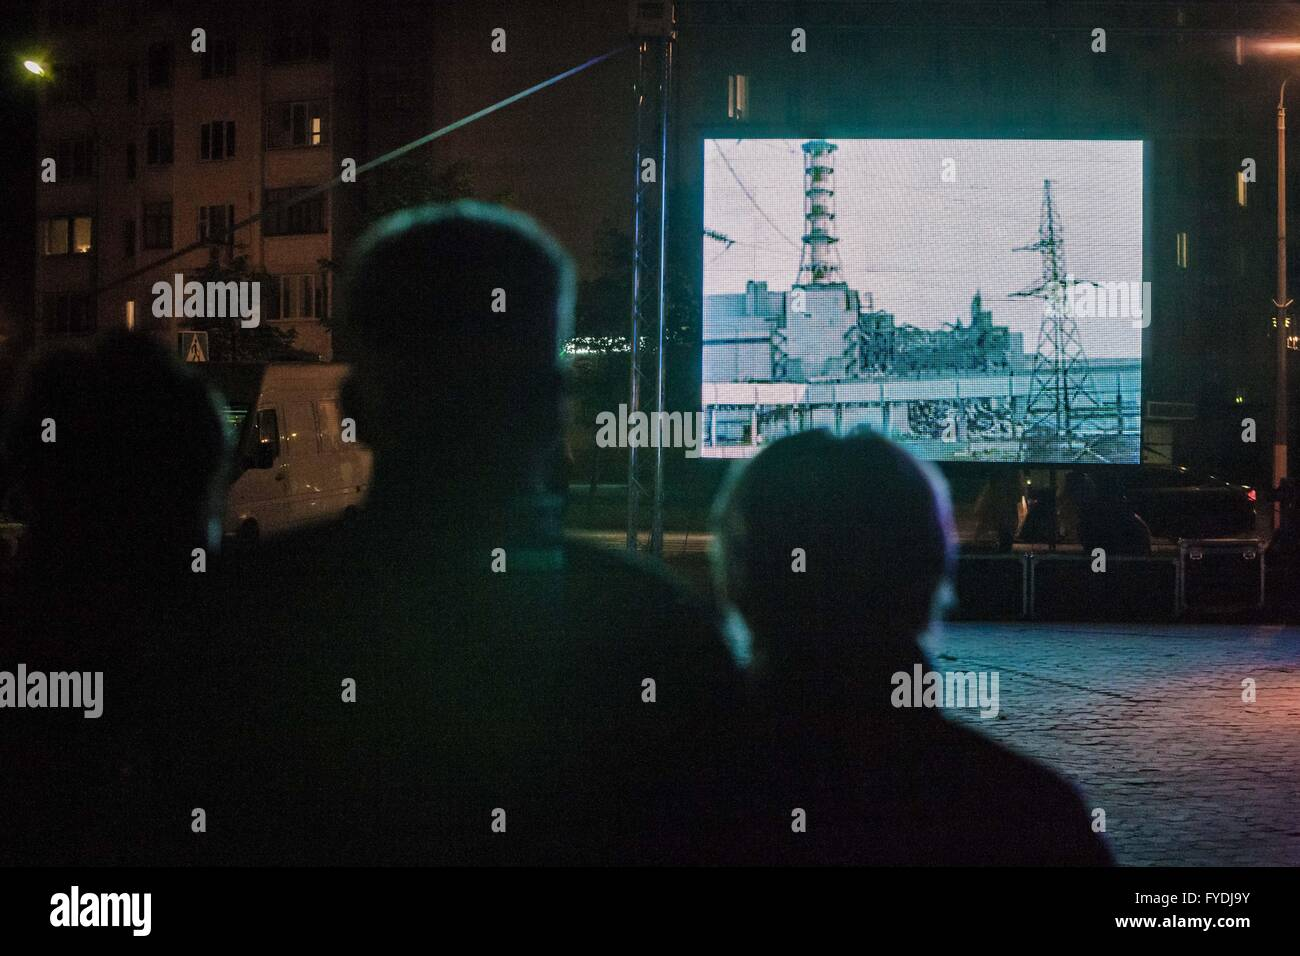 Slavutych, Kiev, Ukraine. 25th Apr, 2016. People watch an outdoor video of the Chernobyl disaster during the ceremony - Stock Image